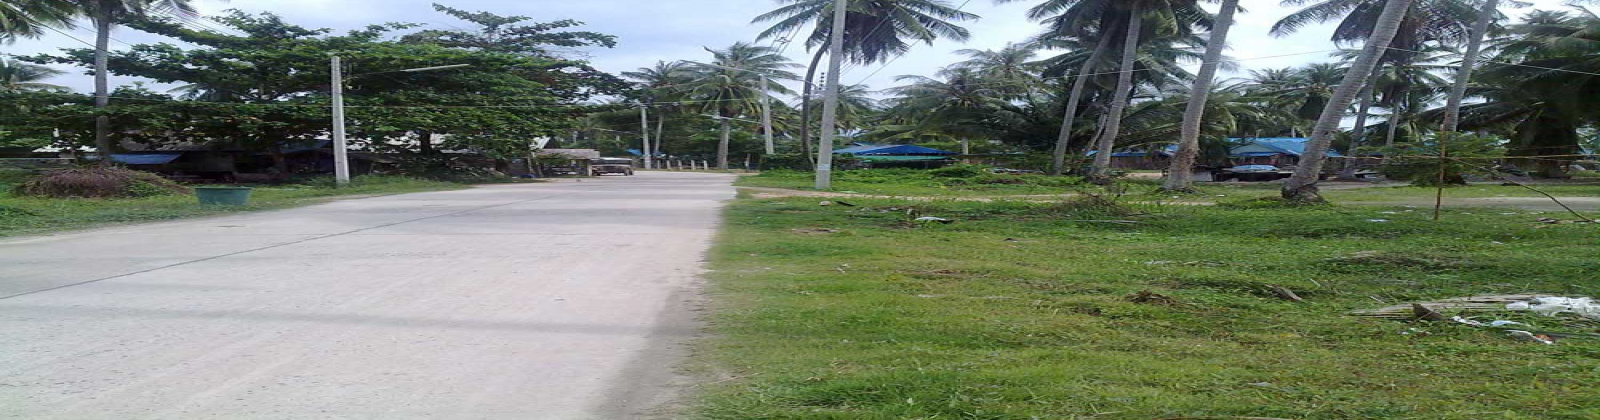 Land,For Sale,1009